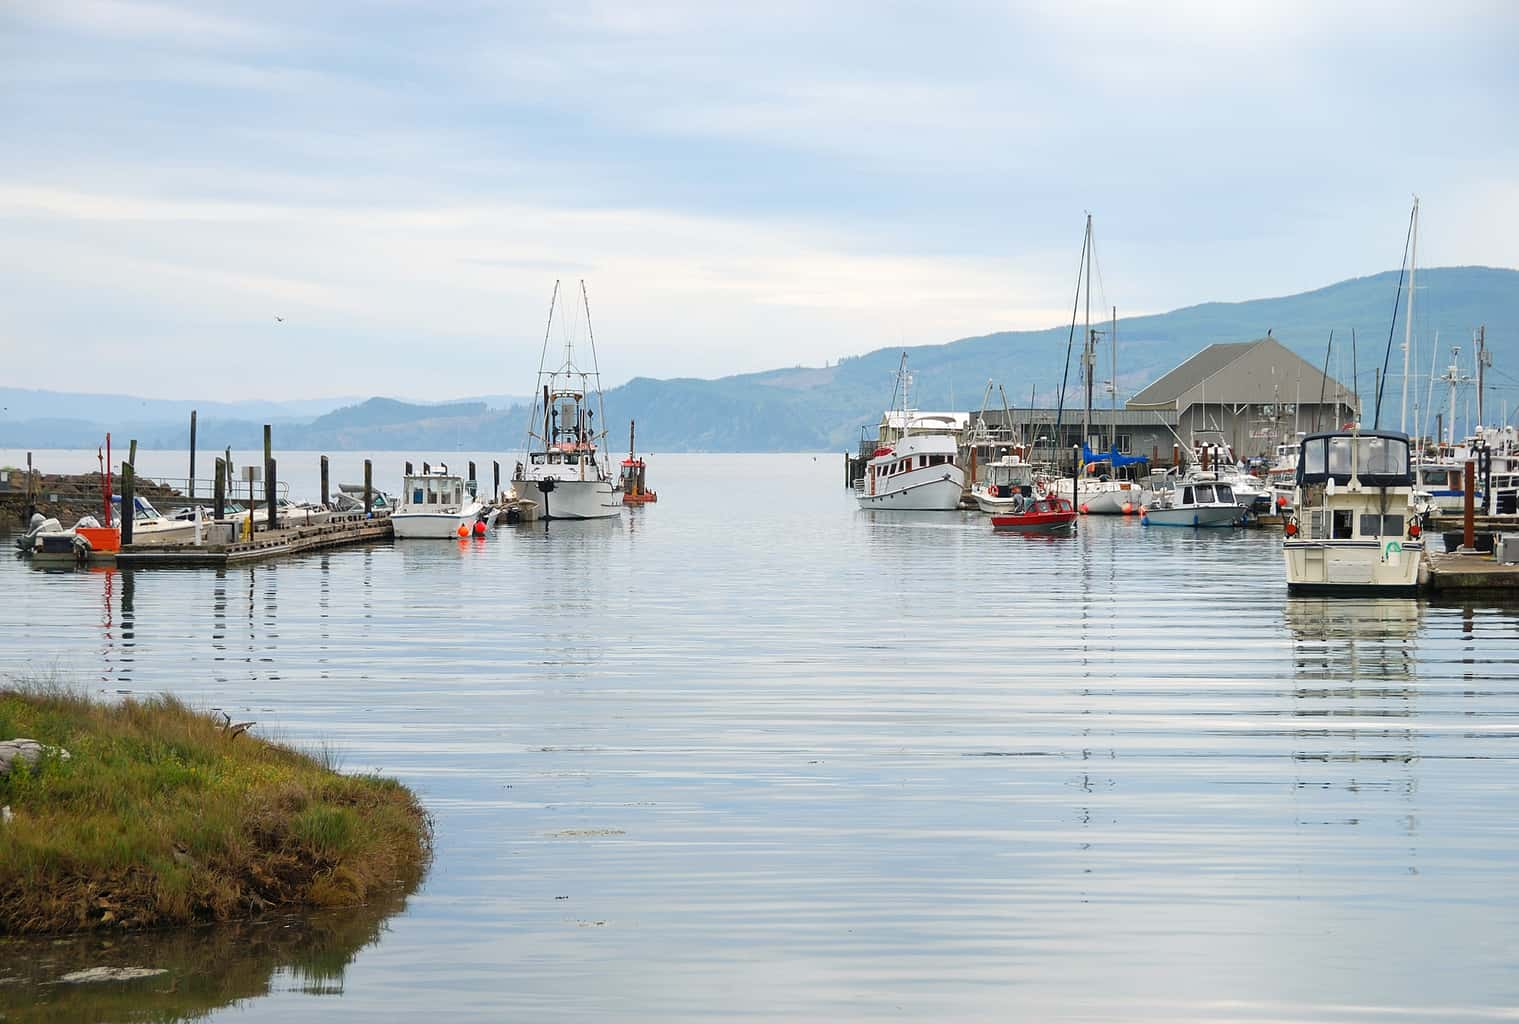 boat basin in the town of wheeler on nehalem bay